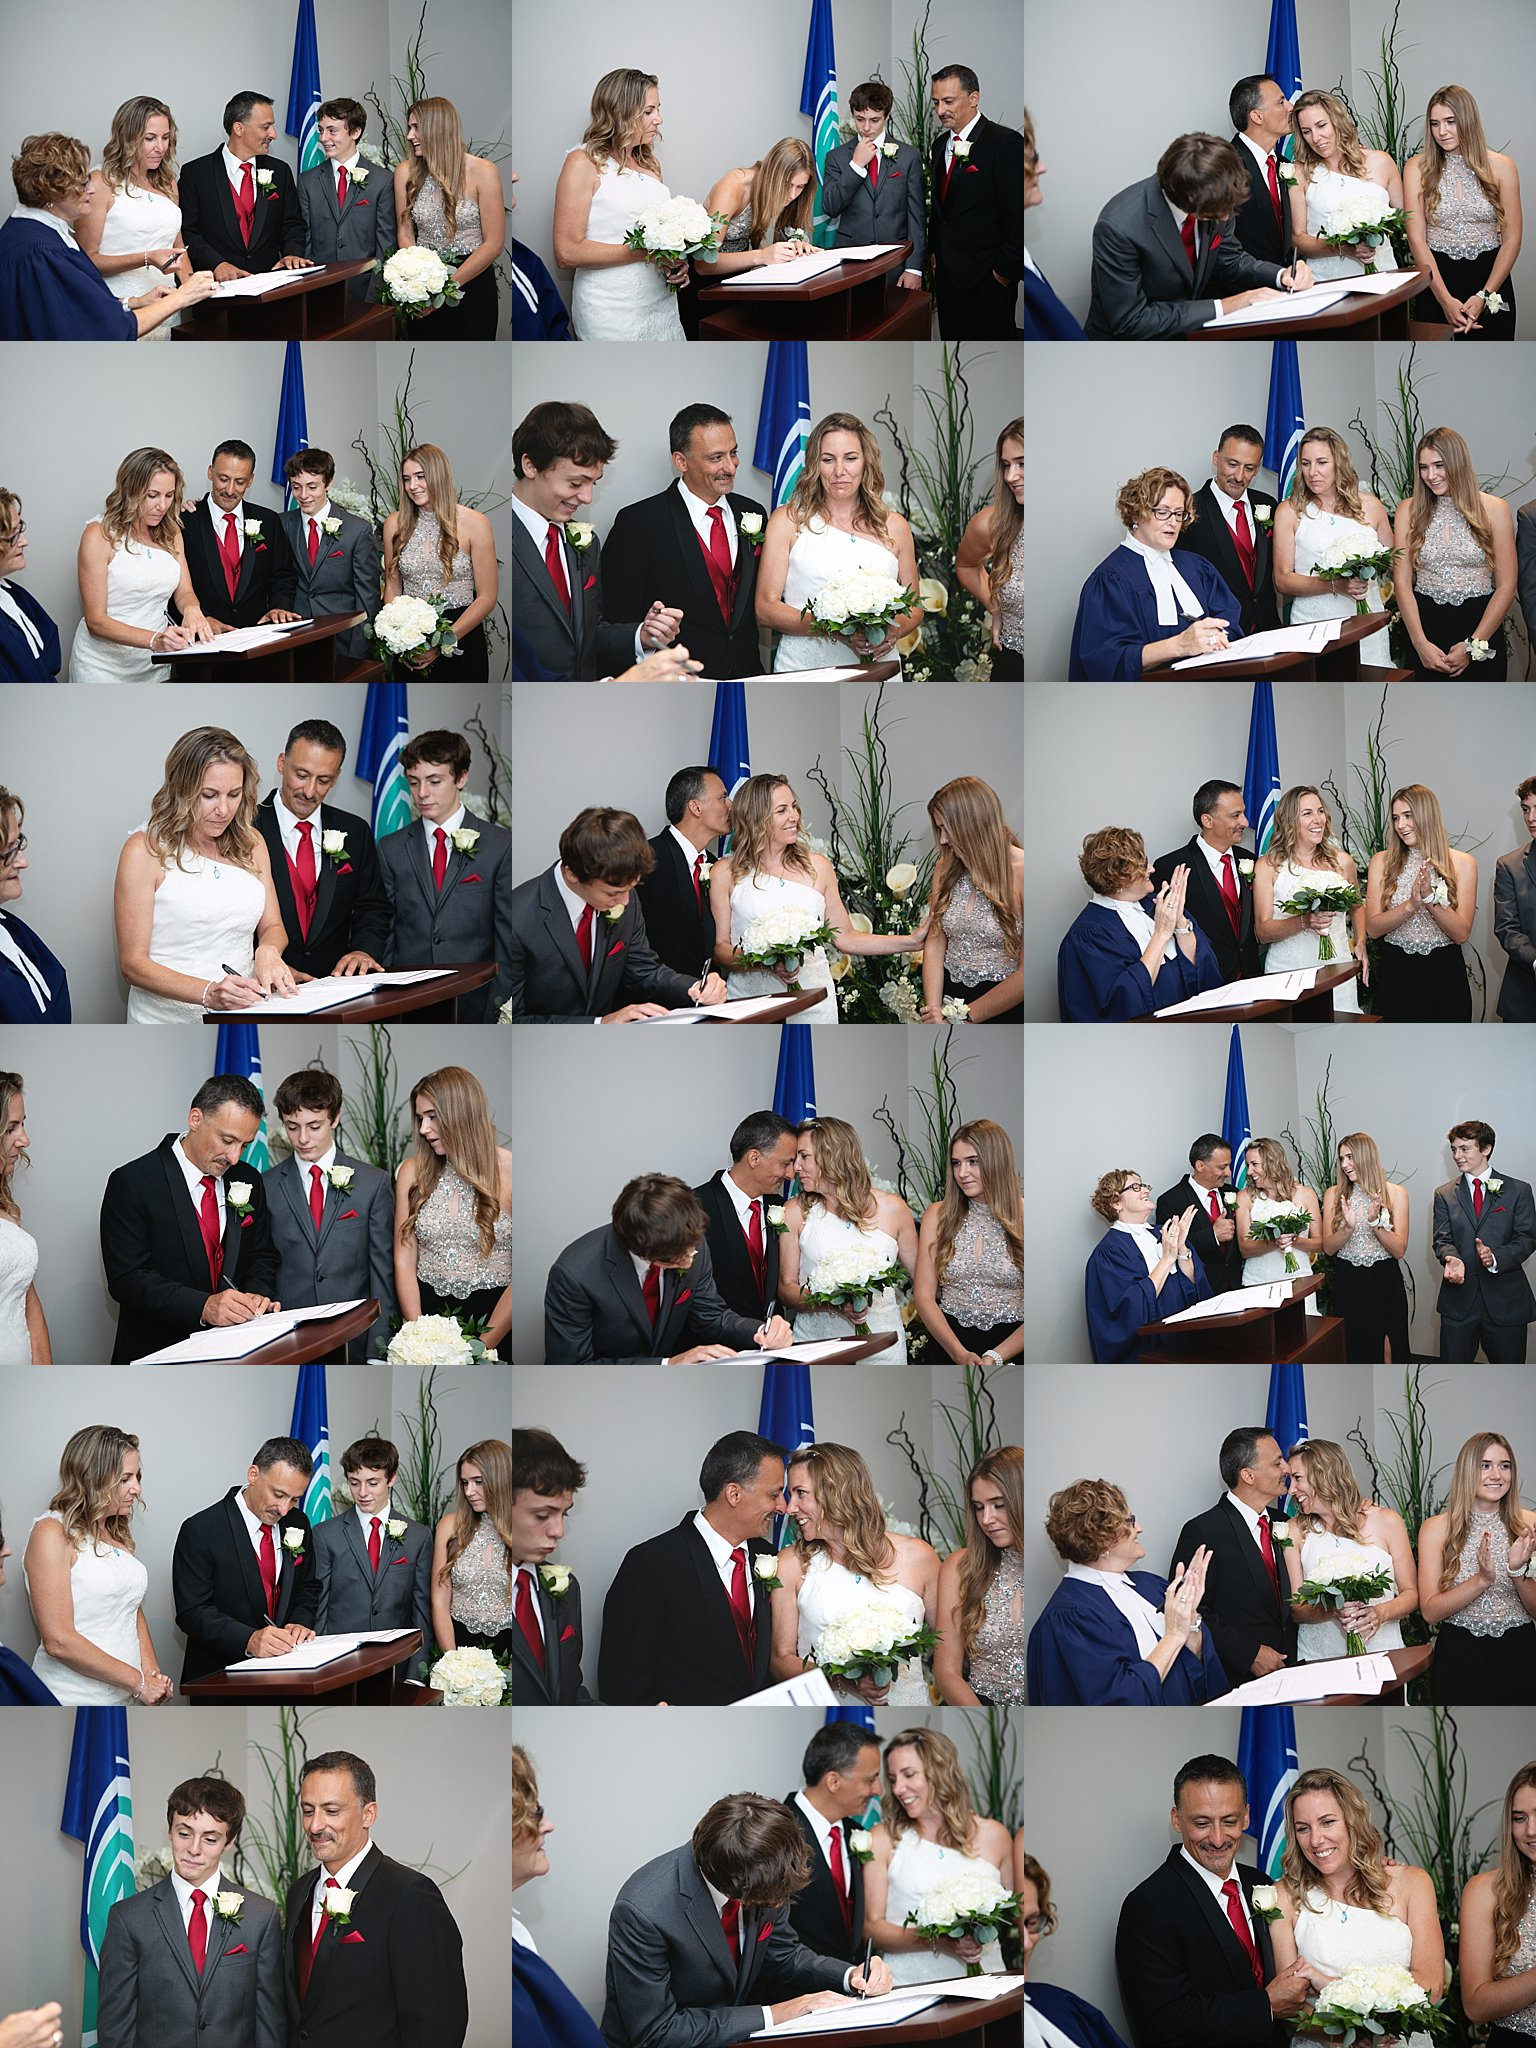 City Hall Wedding Ceremony Ottawa